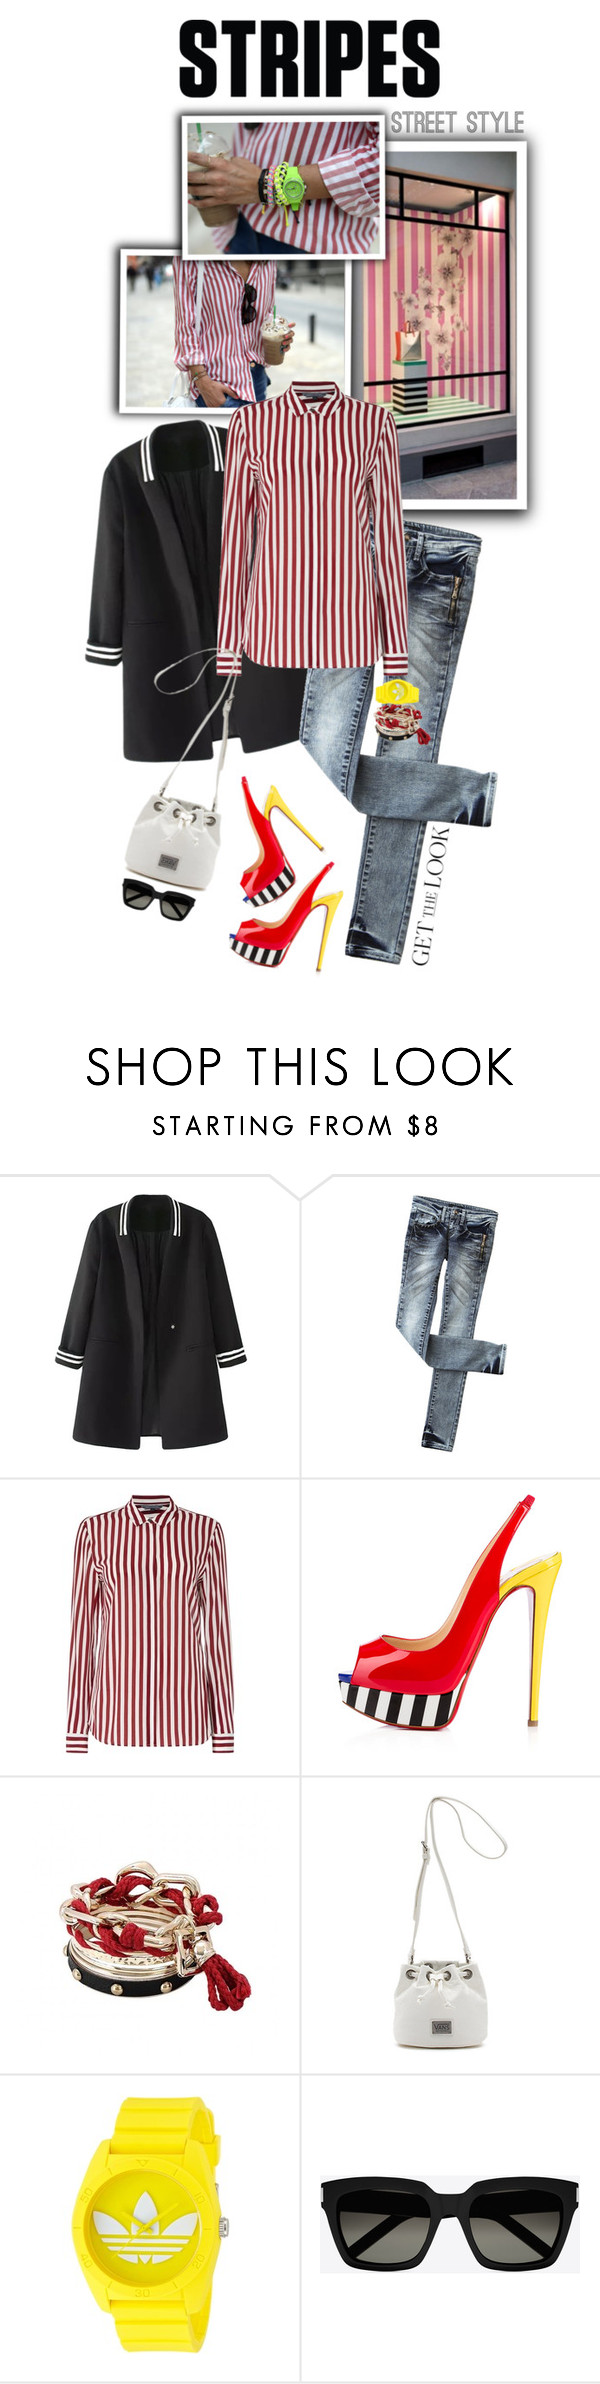 """""""One Direction: Striped Shirts"""" by shortyluv718 ❤ liked on Polyvore featuring Tommy Hilfiger, Christian Louboutin, Vans, adidas, Yves Saint Laurent and stripes"""